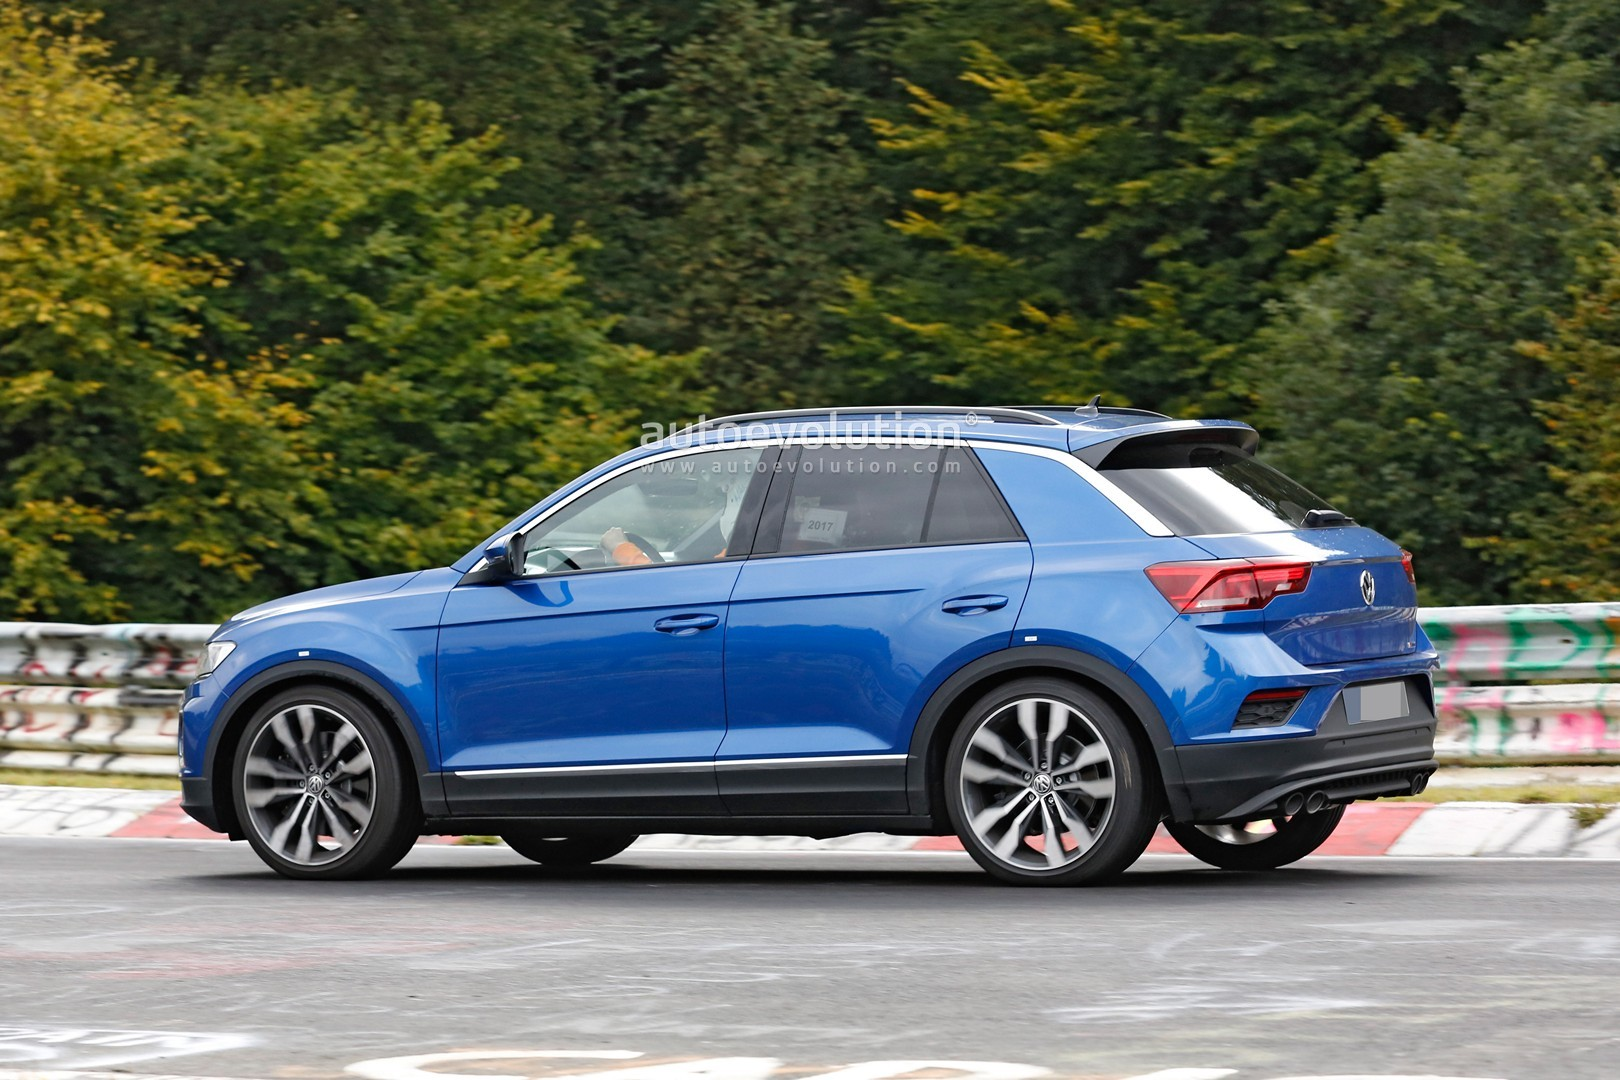 T Roc R Line >> Spyshots: VW T-Roc R With Quad Exhaust Likely Has 300+ HP - autoevolution